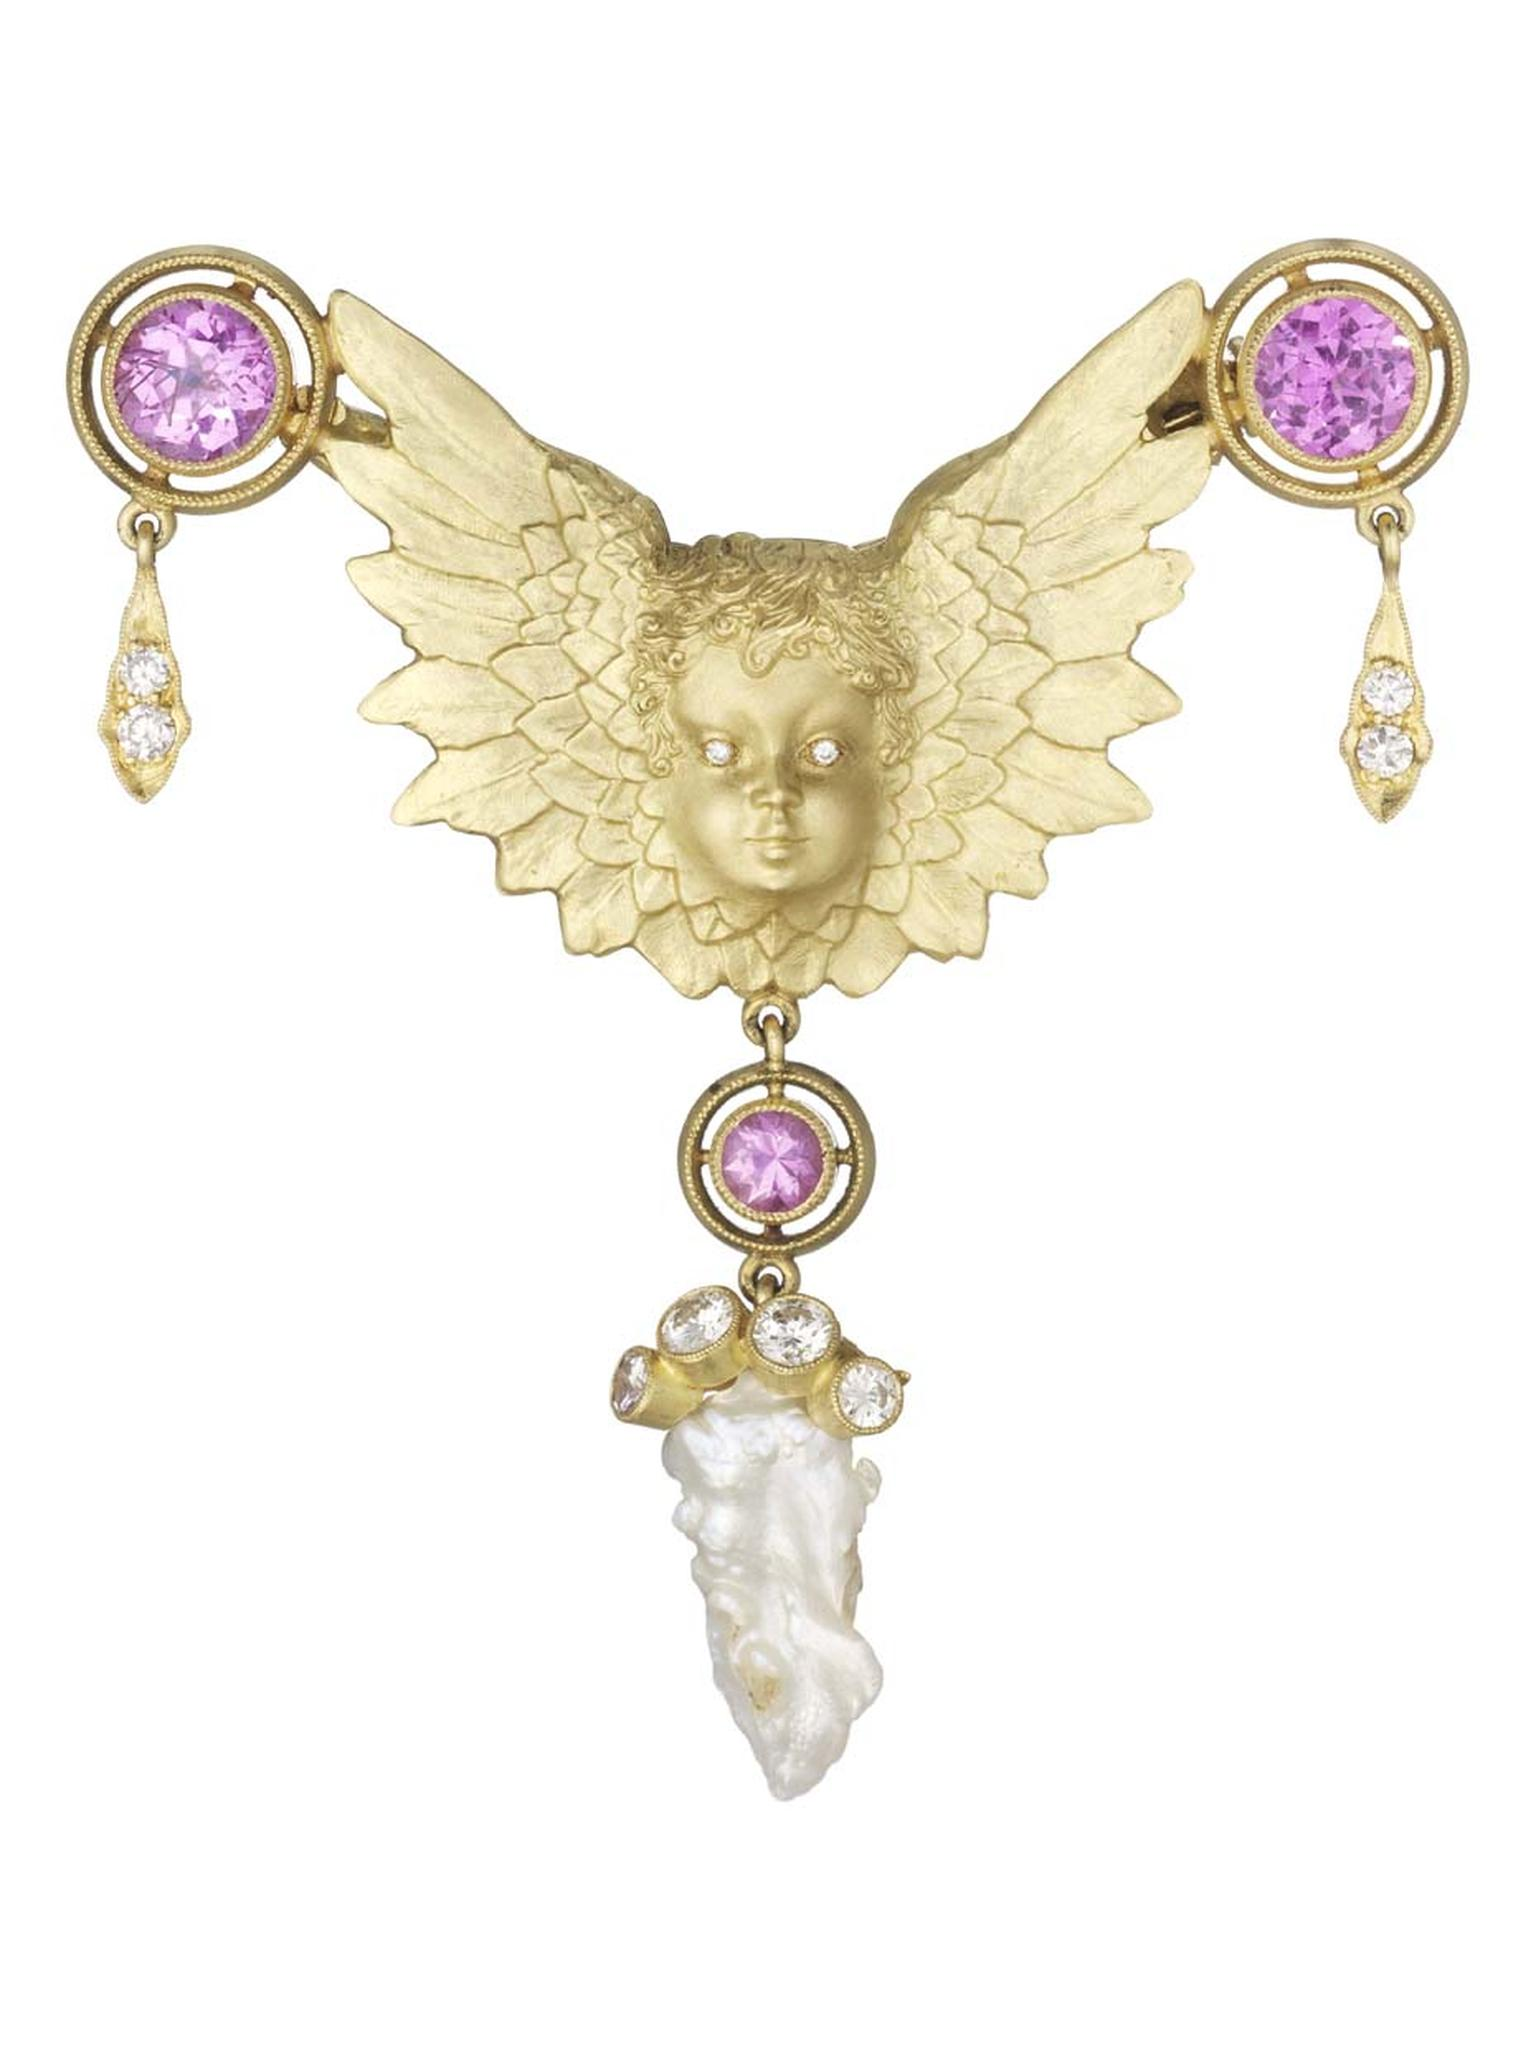 Anthony Lent's diamond-eyed Putti brooch, adorned with flying diamonds, natural pearls and pink sapphires set in gold, is a signature piece.